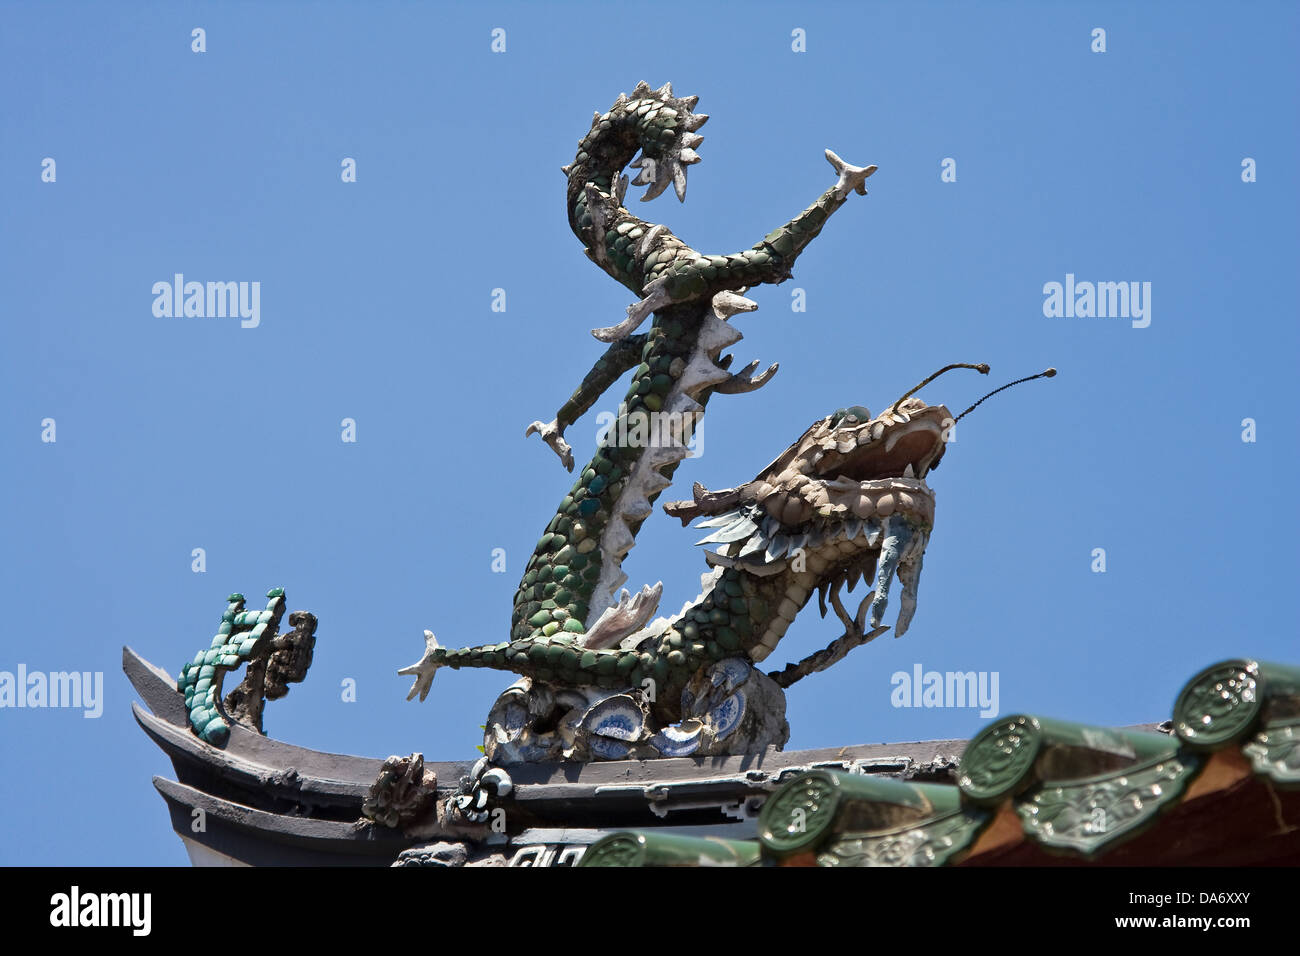 Asia,Singapore,Singapore City,China Town,Thian Hock Keng Hokkien Temple,dragon on the roof - Stock Image